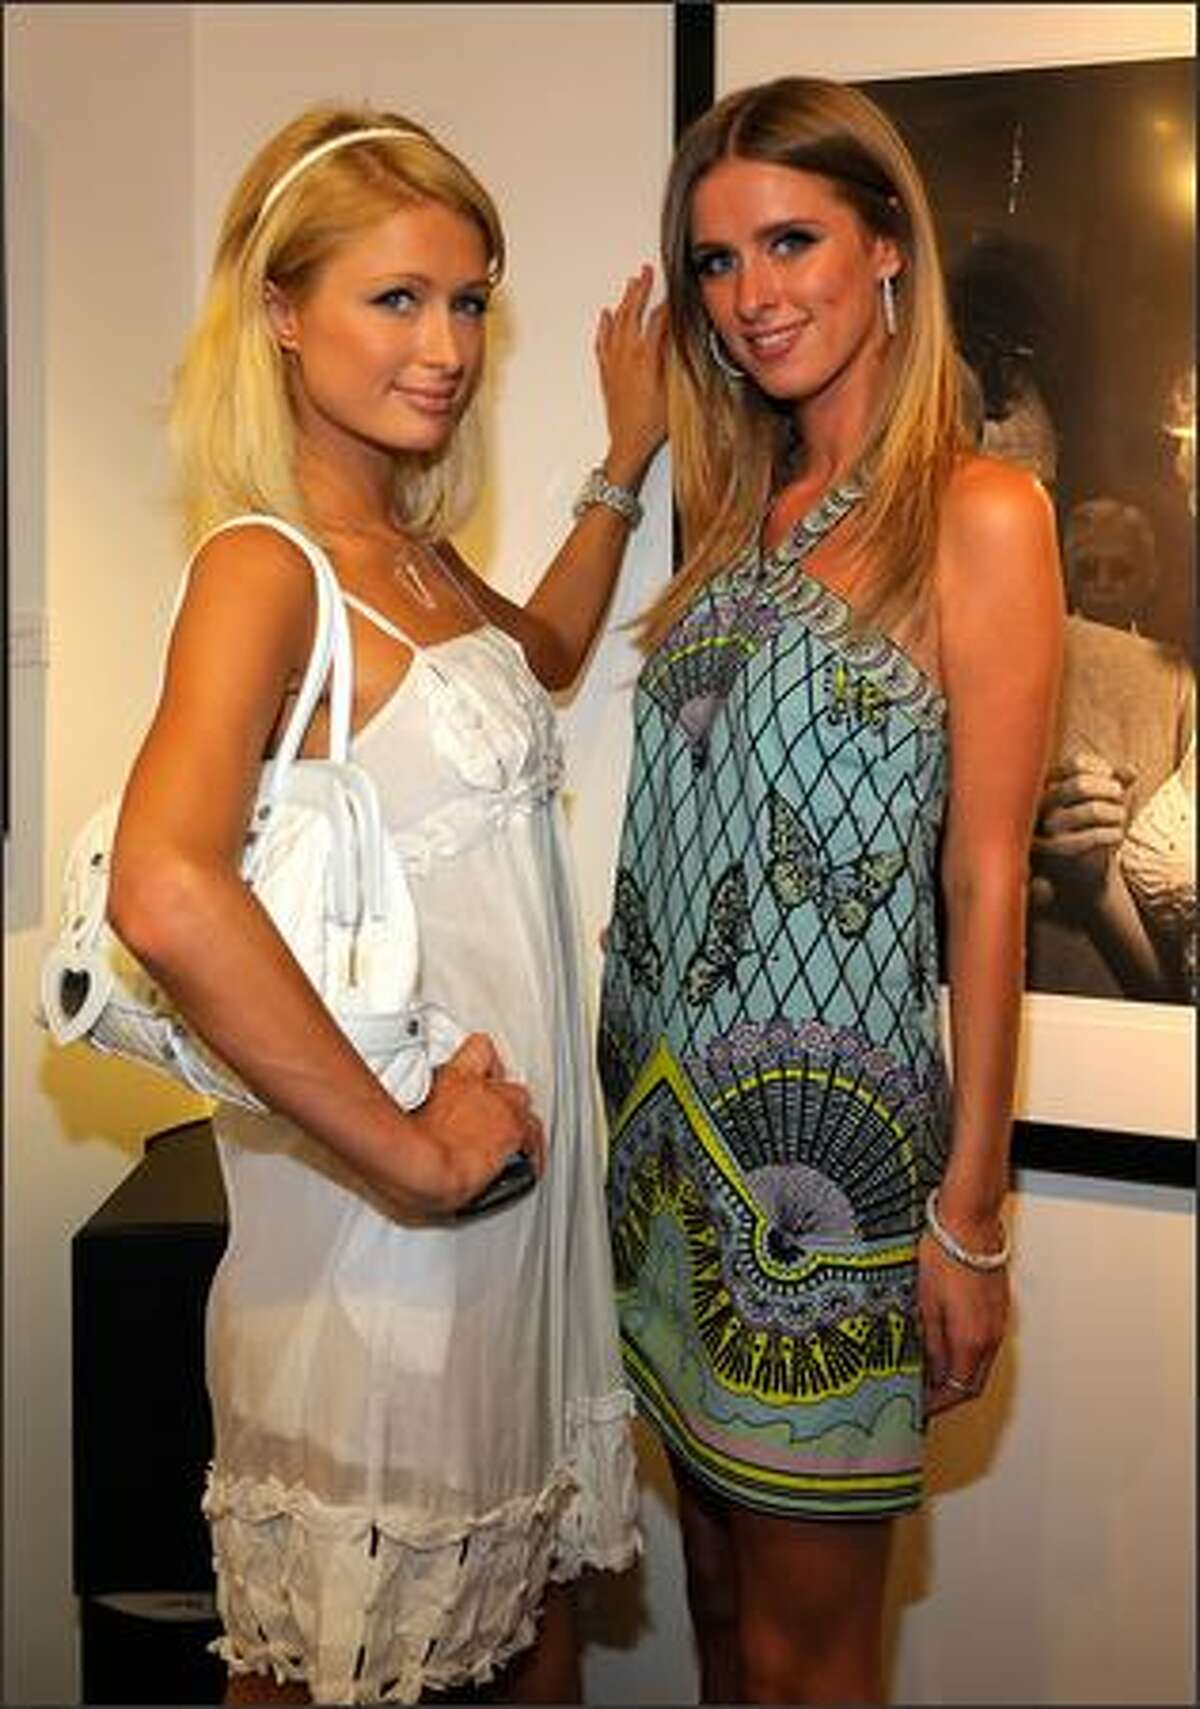 Socialites Paris Hilton (L) and Nicky Hilton attend the opening of